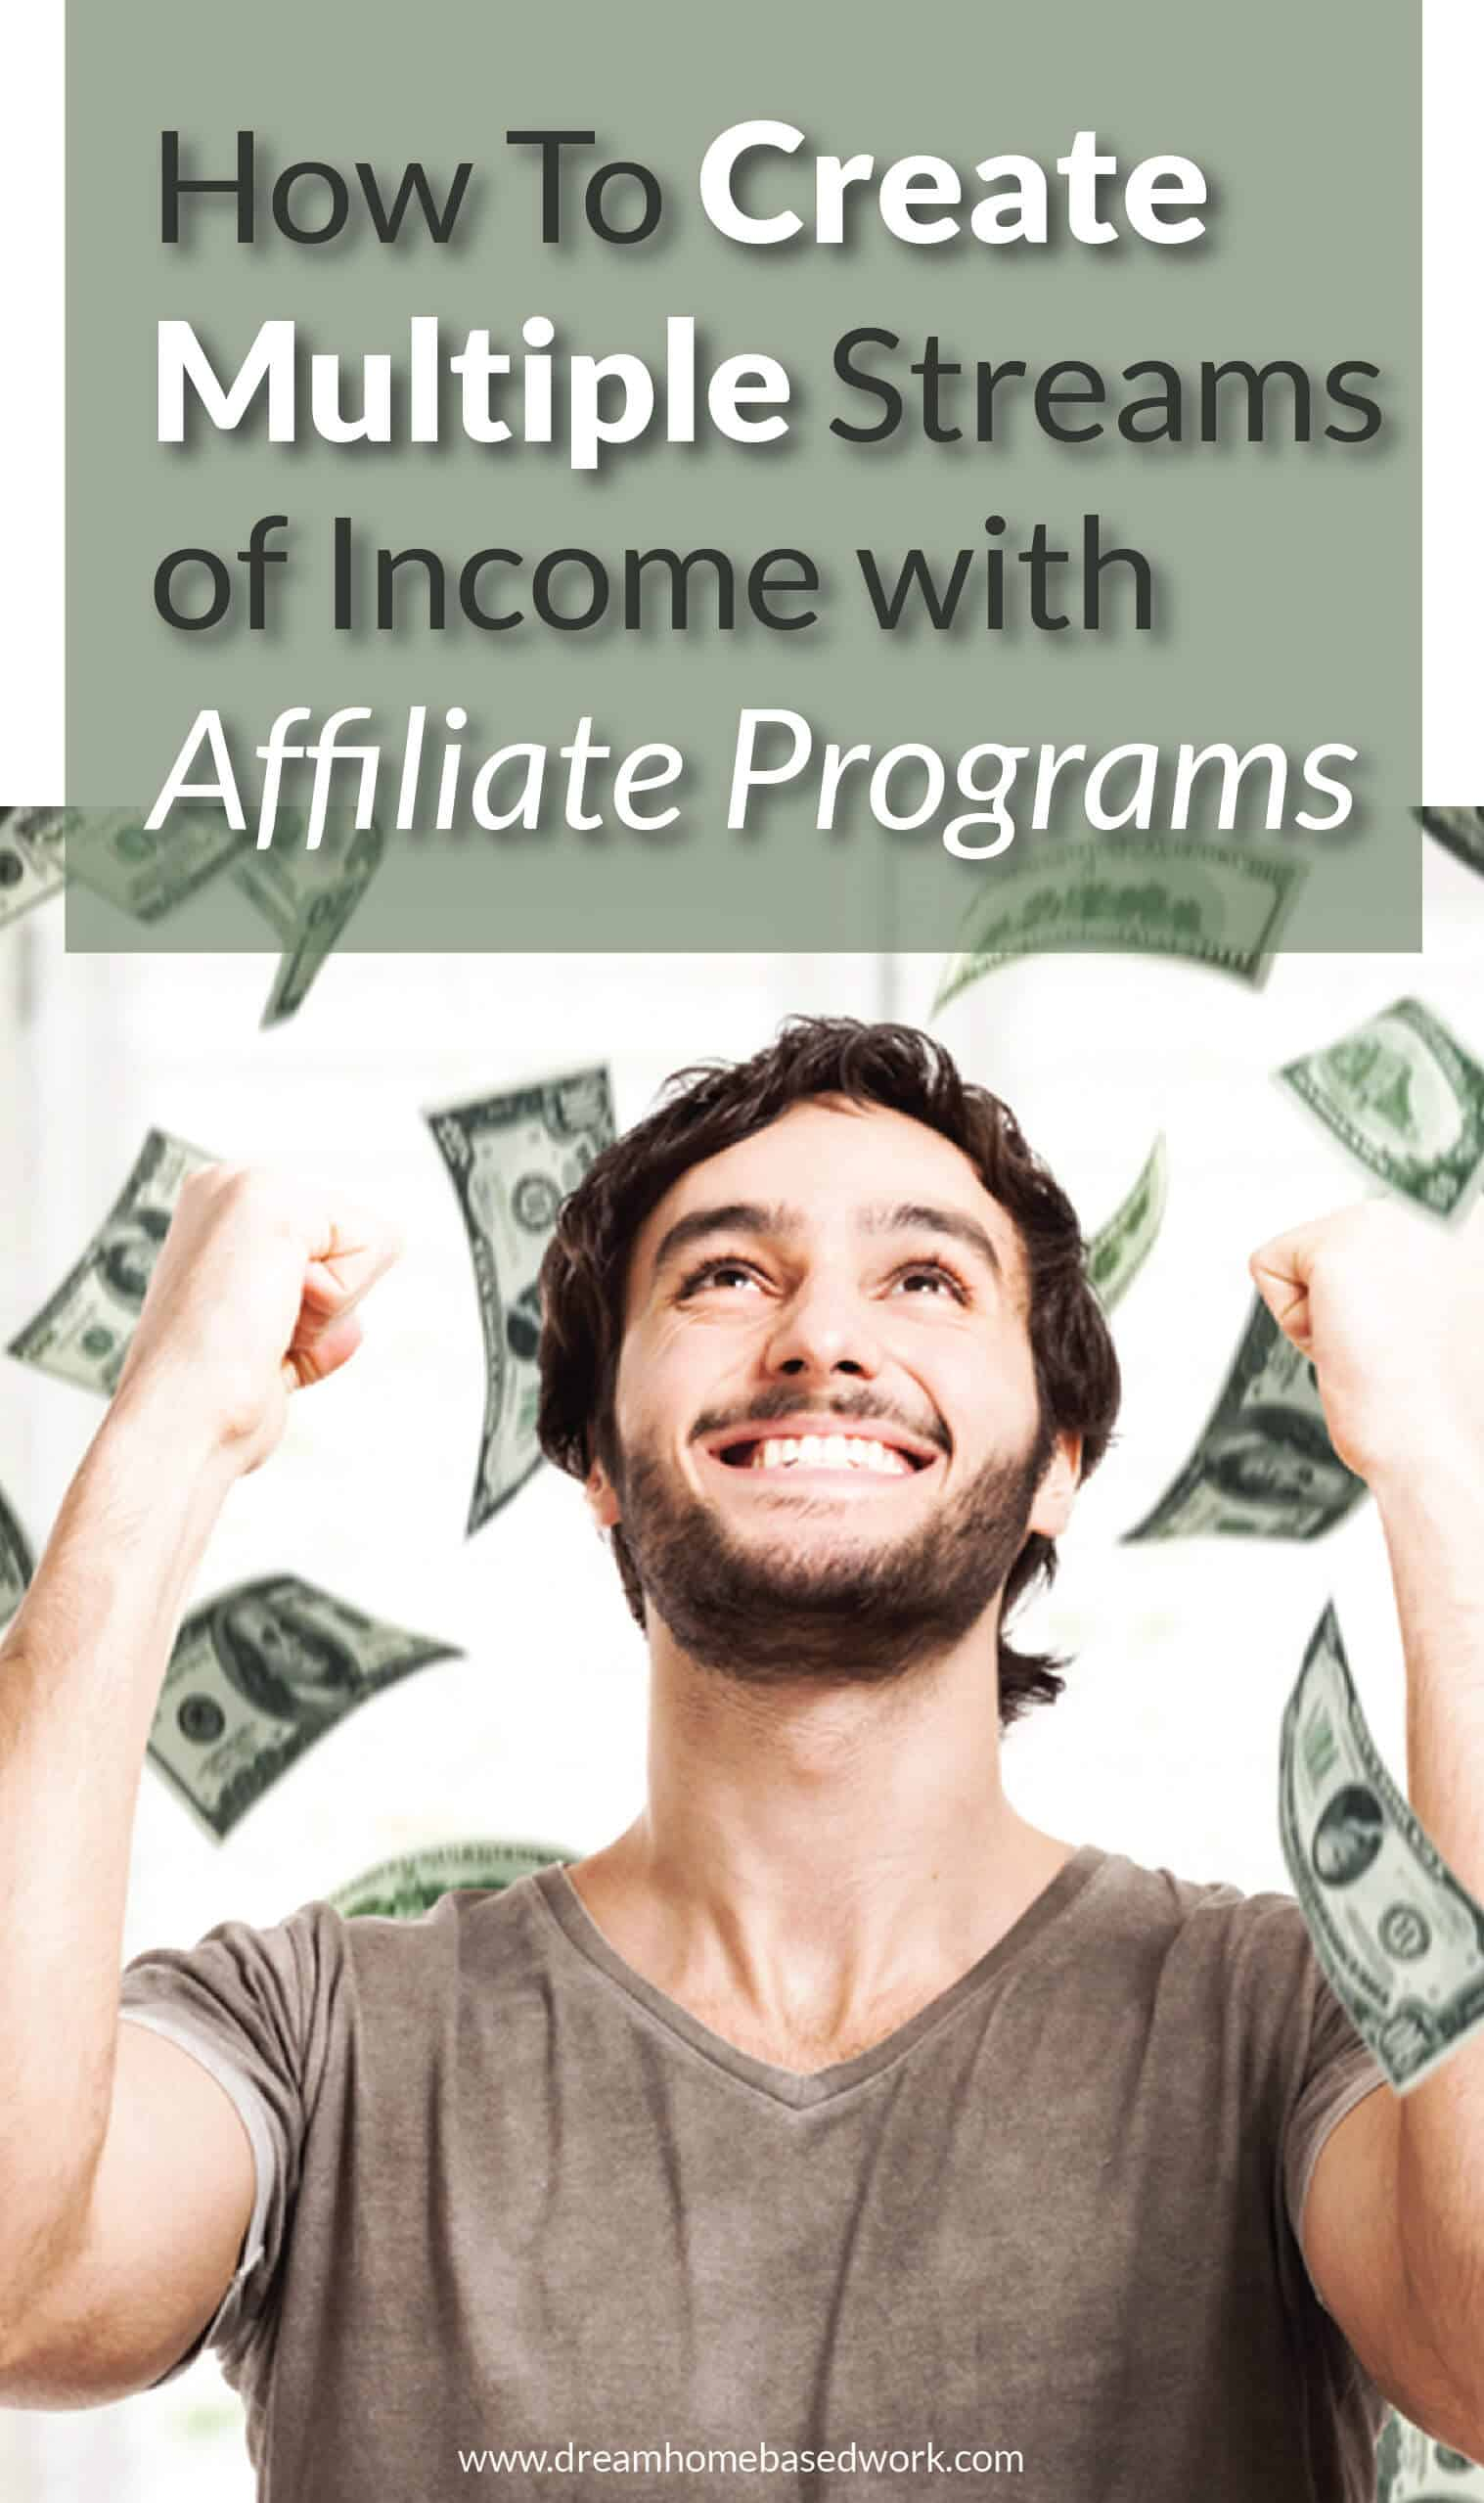 How to Create Multiple Streams of Income with Affiliate Programs